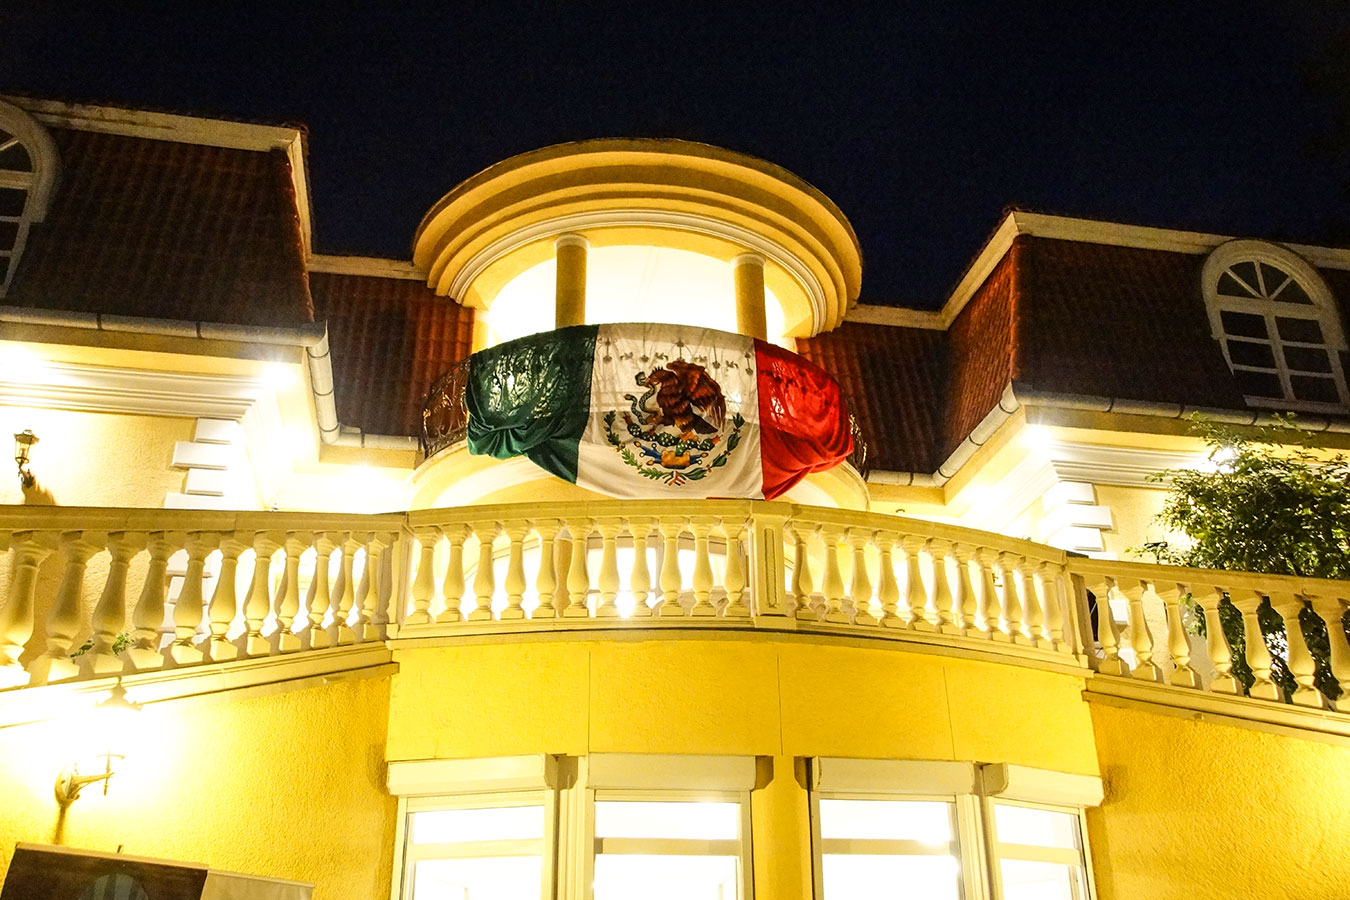 mex-dia-de-la-independencia-2018-residence-by-night.jpg